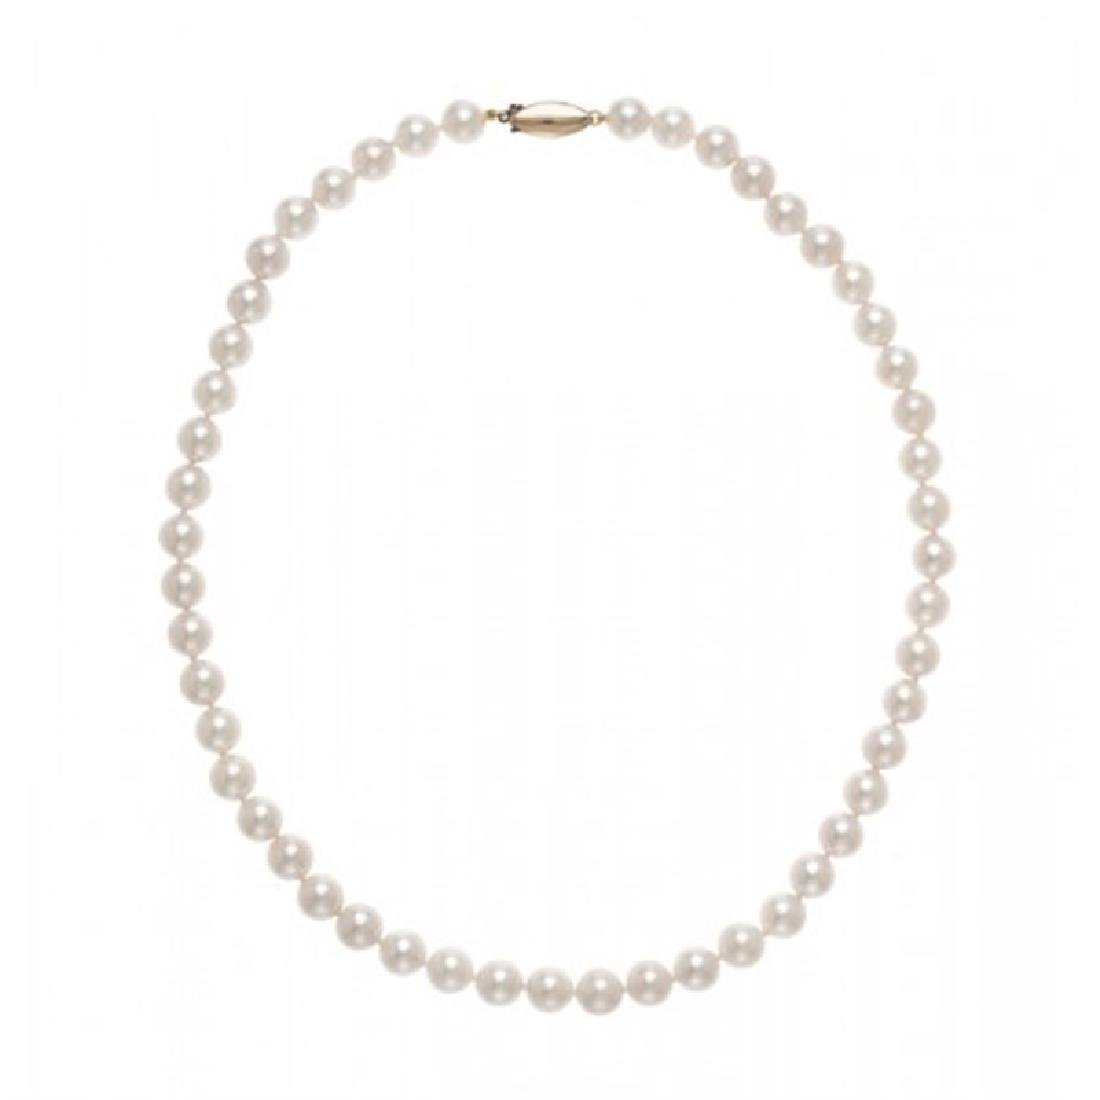 8.0-8.5mm Japanese Akoya Pearl Necklace